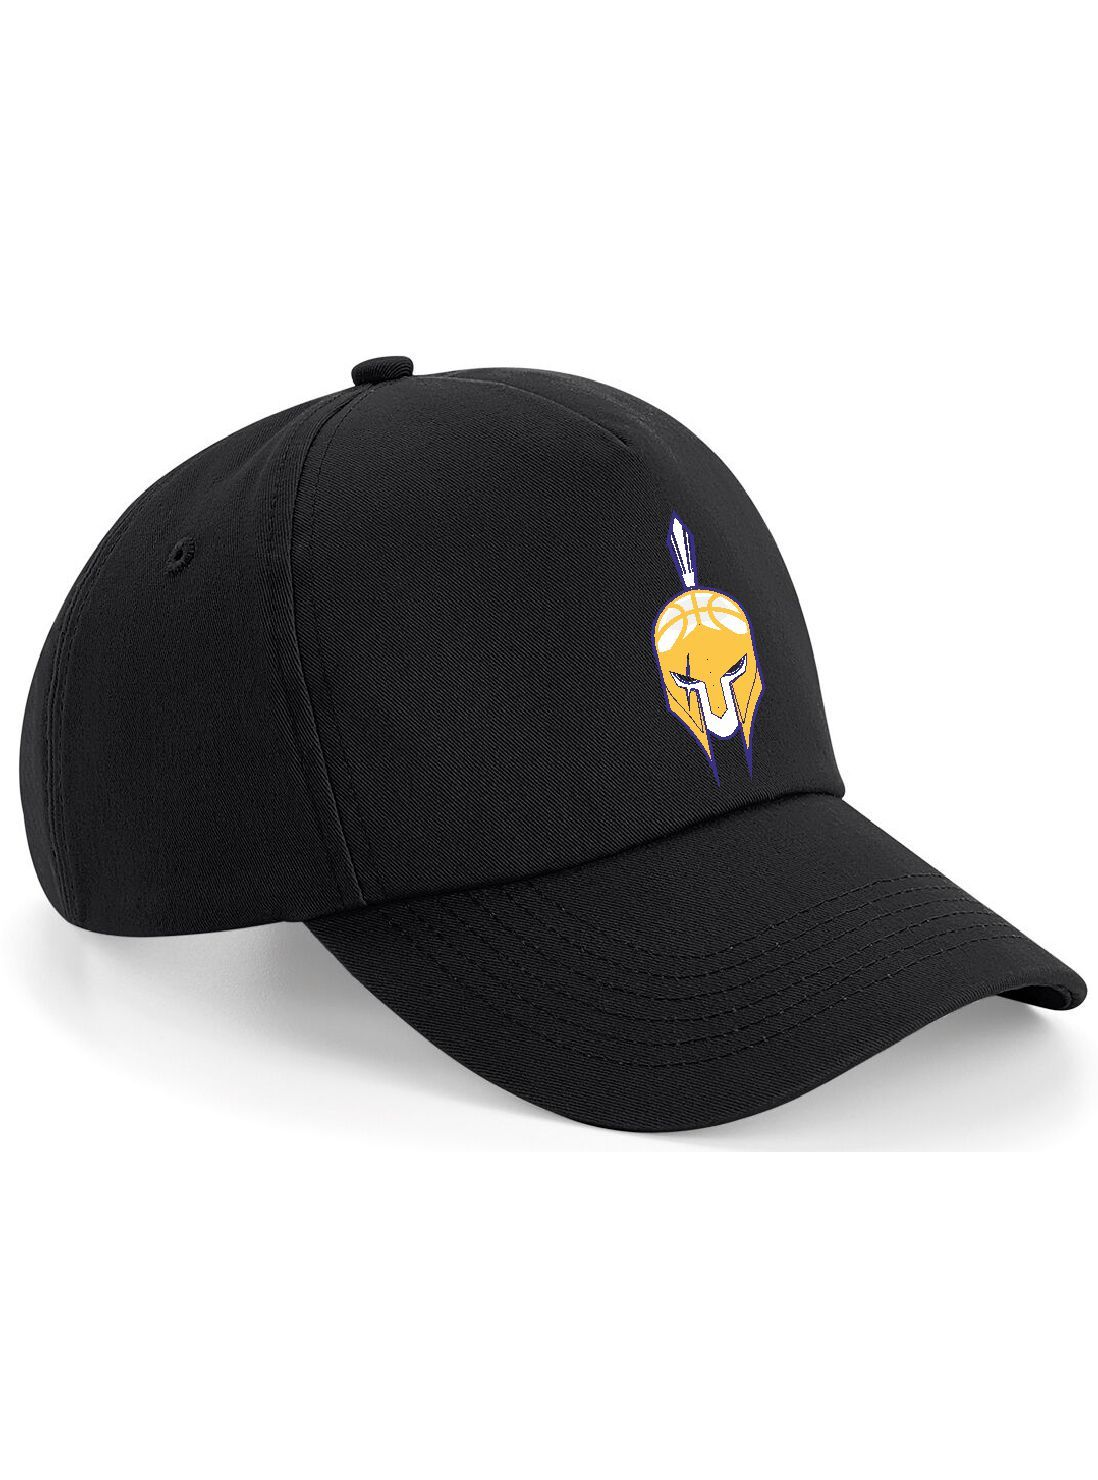 Warriors - Cap (Black)